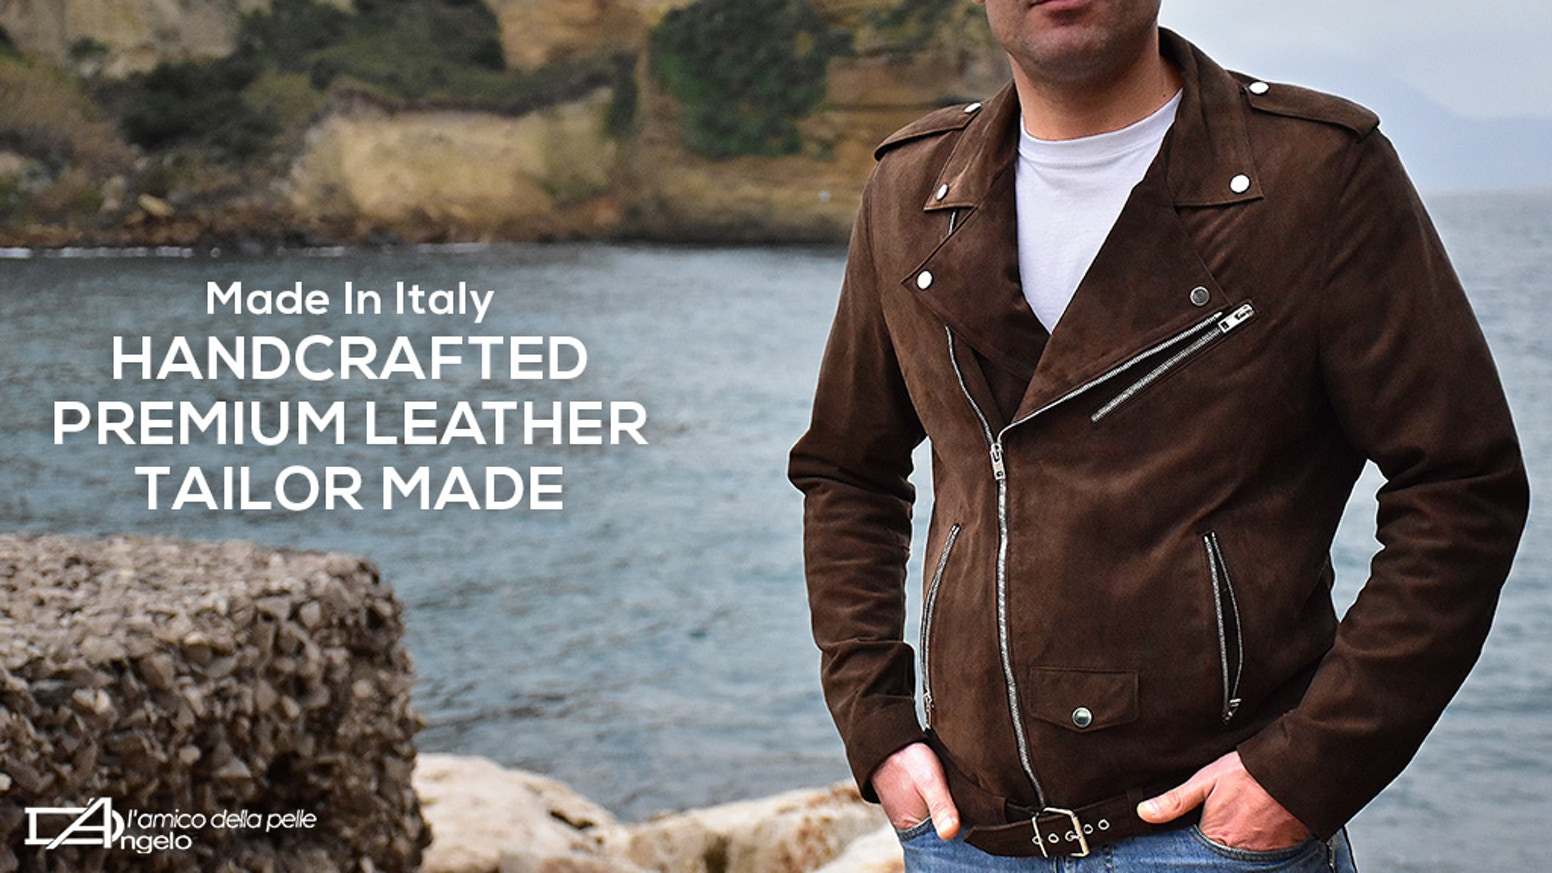 Chapter 2 Handcrafted Leather Jackets Made In Italy